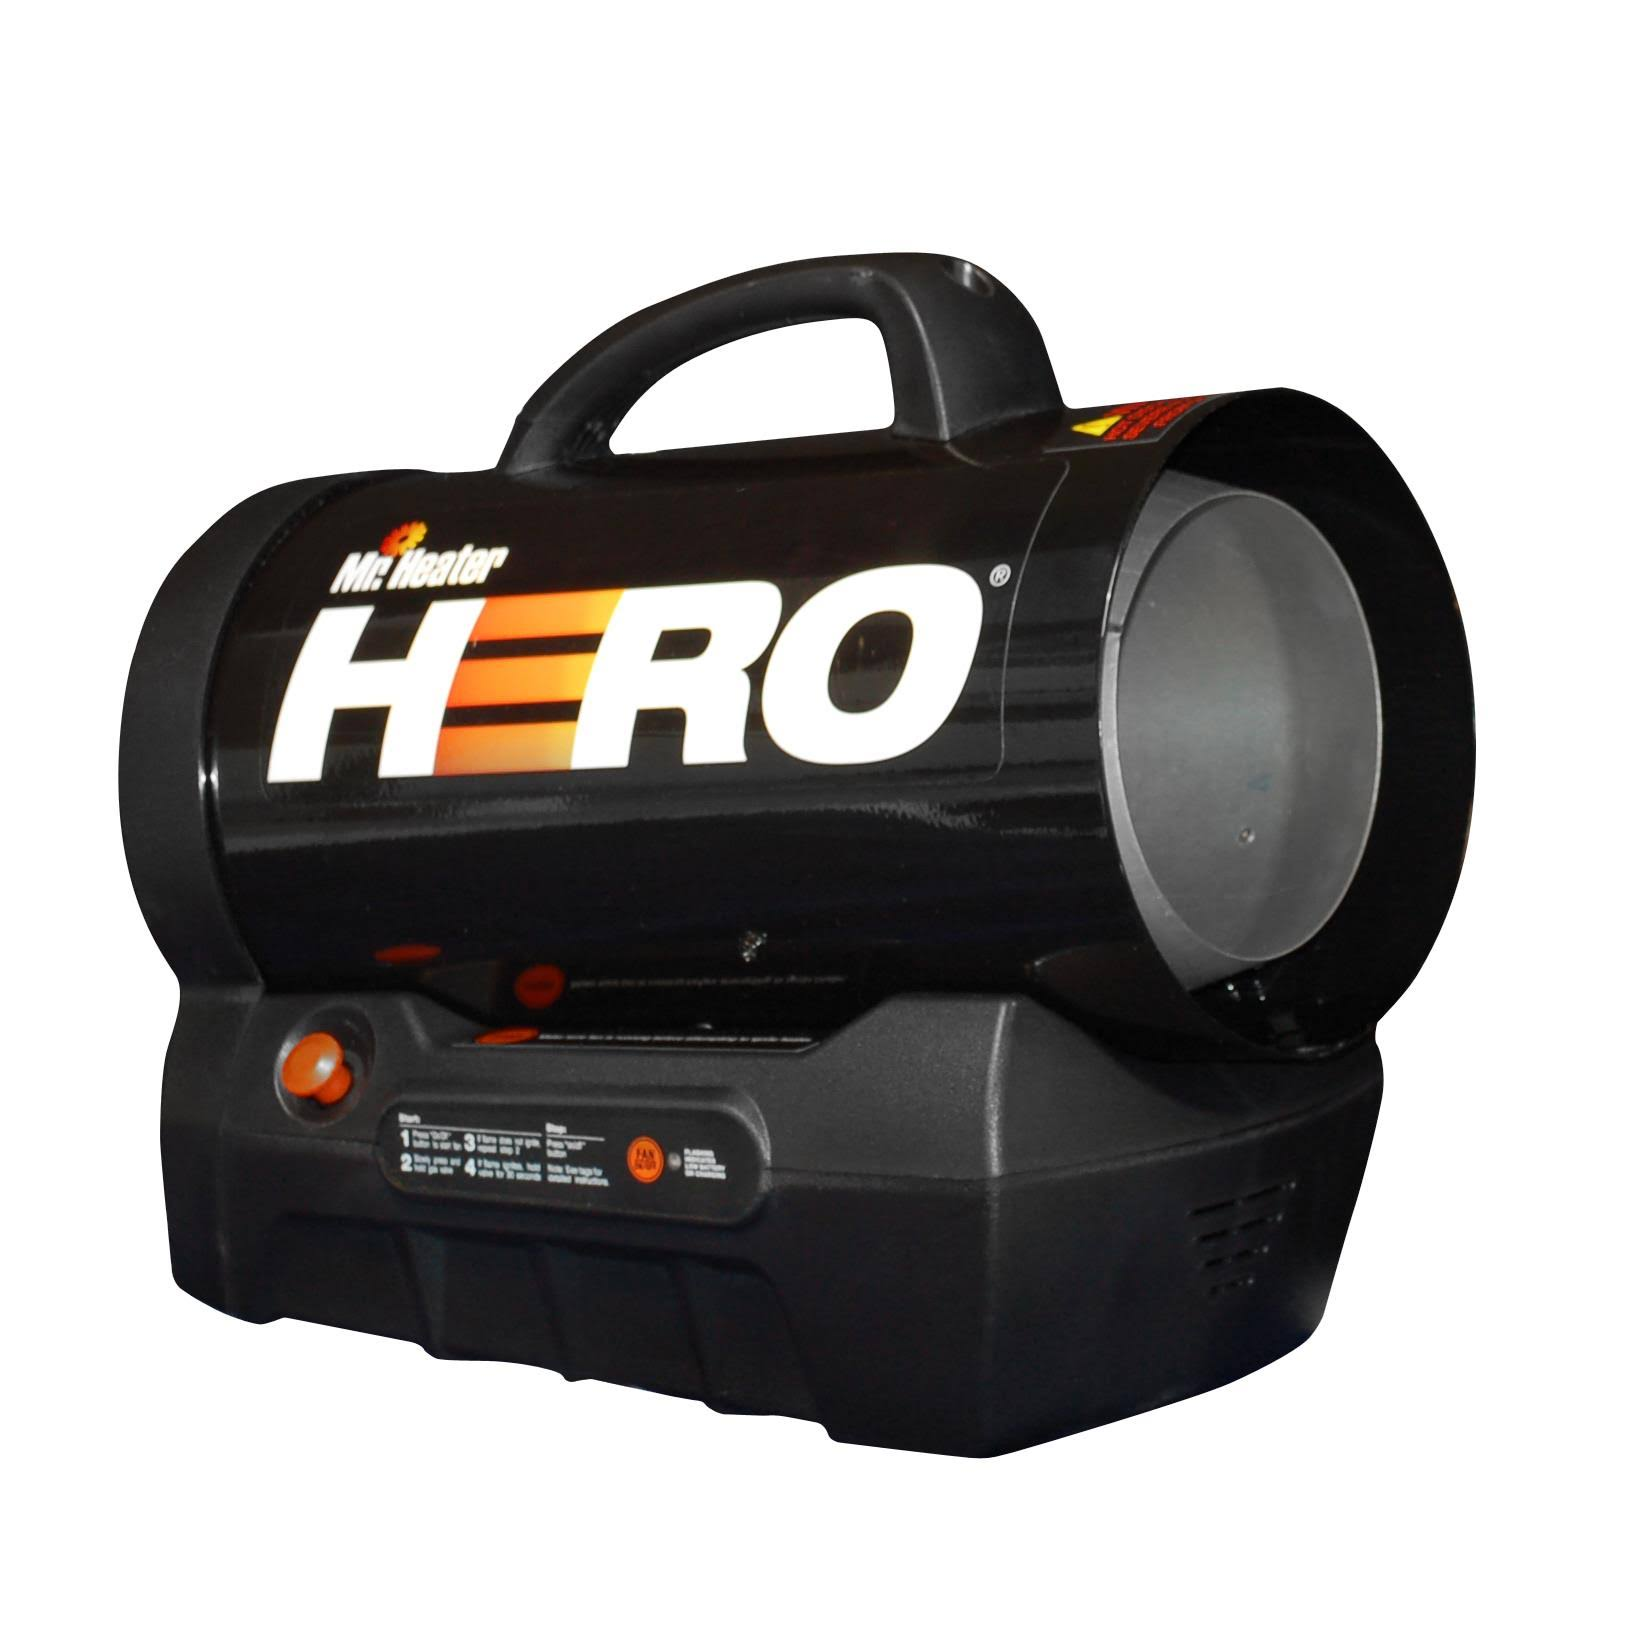 Mr. Heater Hero Propane Heater - 35000btu